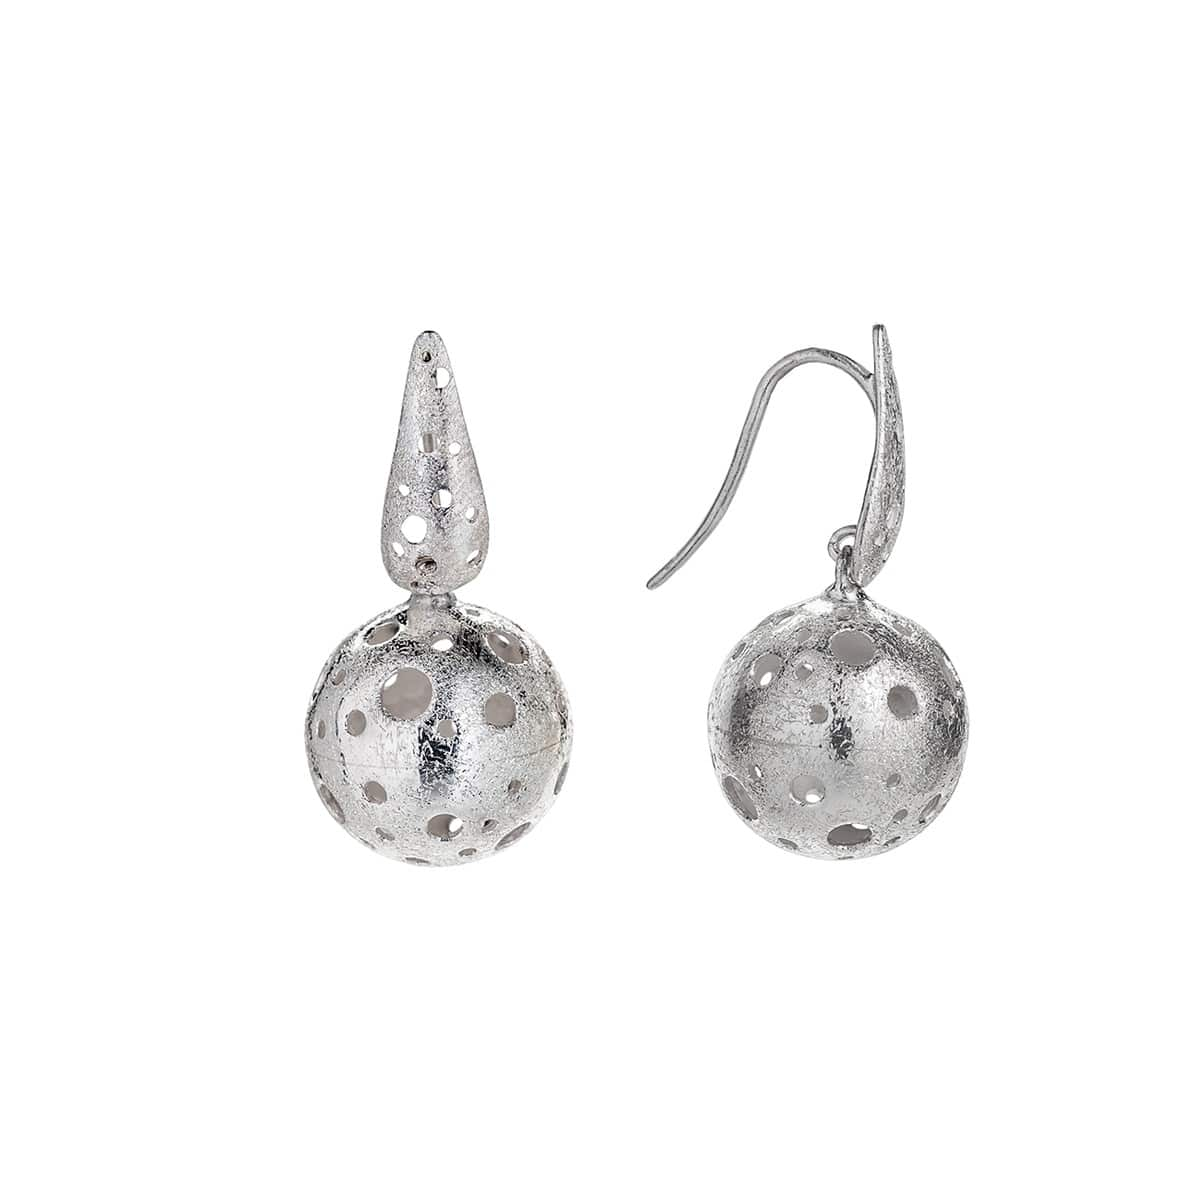 Silver Ball earrings filled with Pearls